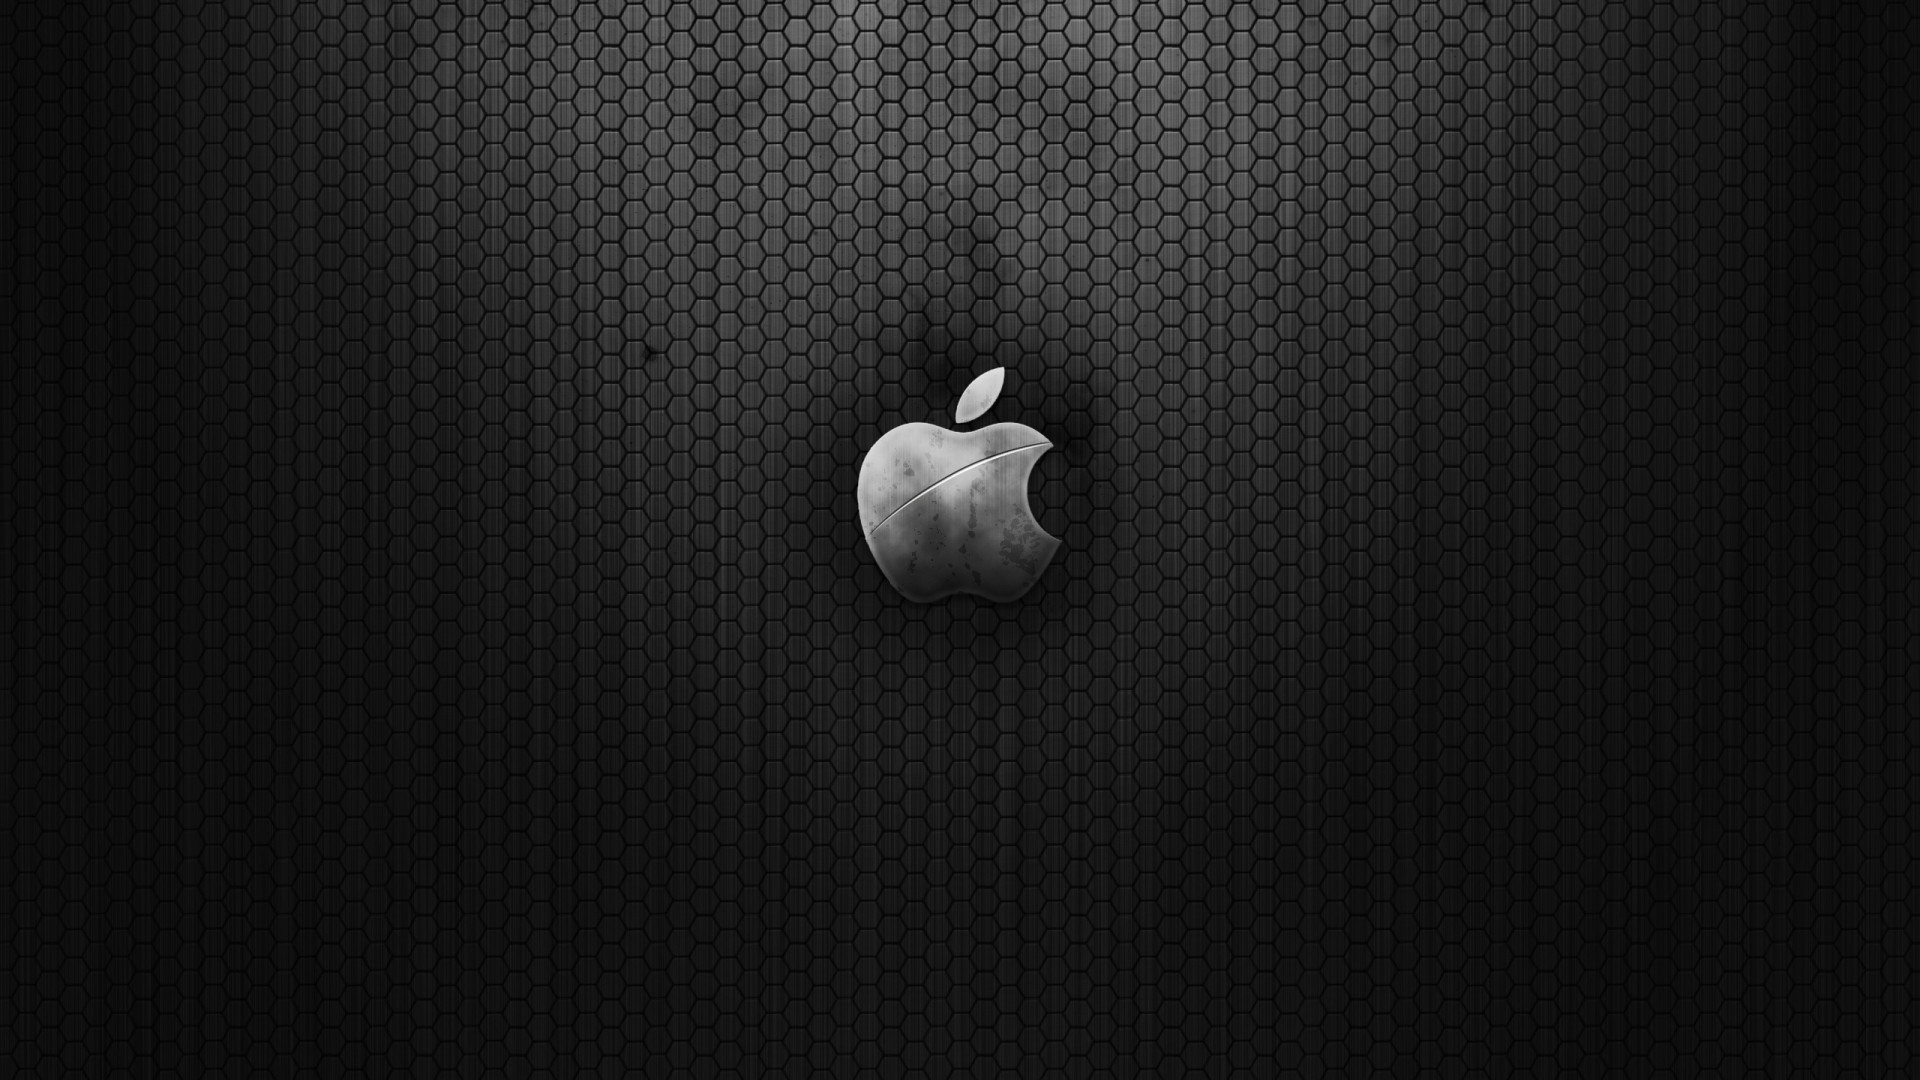 … apple metal carbon fiber 1920 x 1080 hdtv 1080p wallpaper …